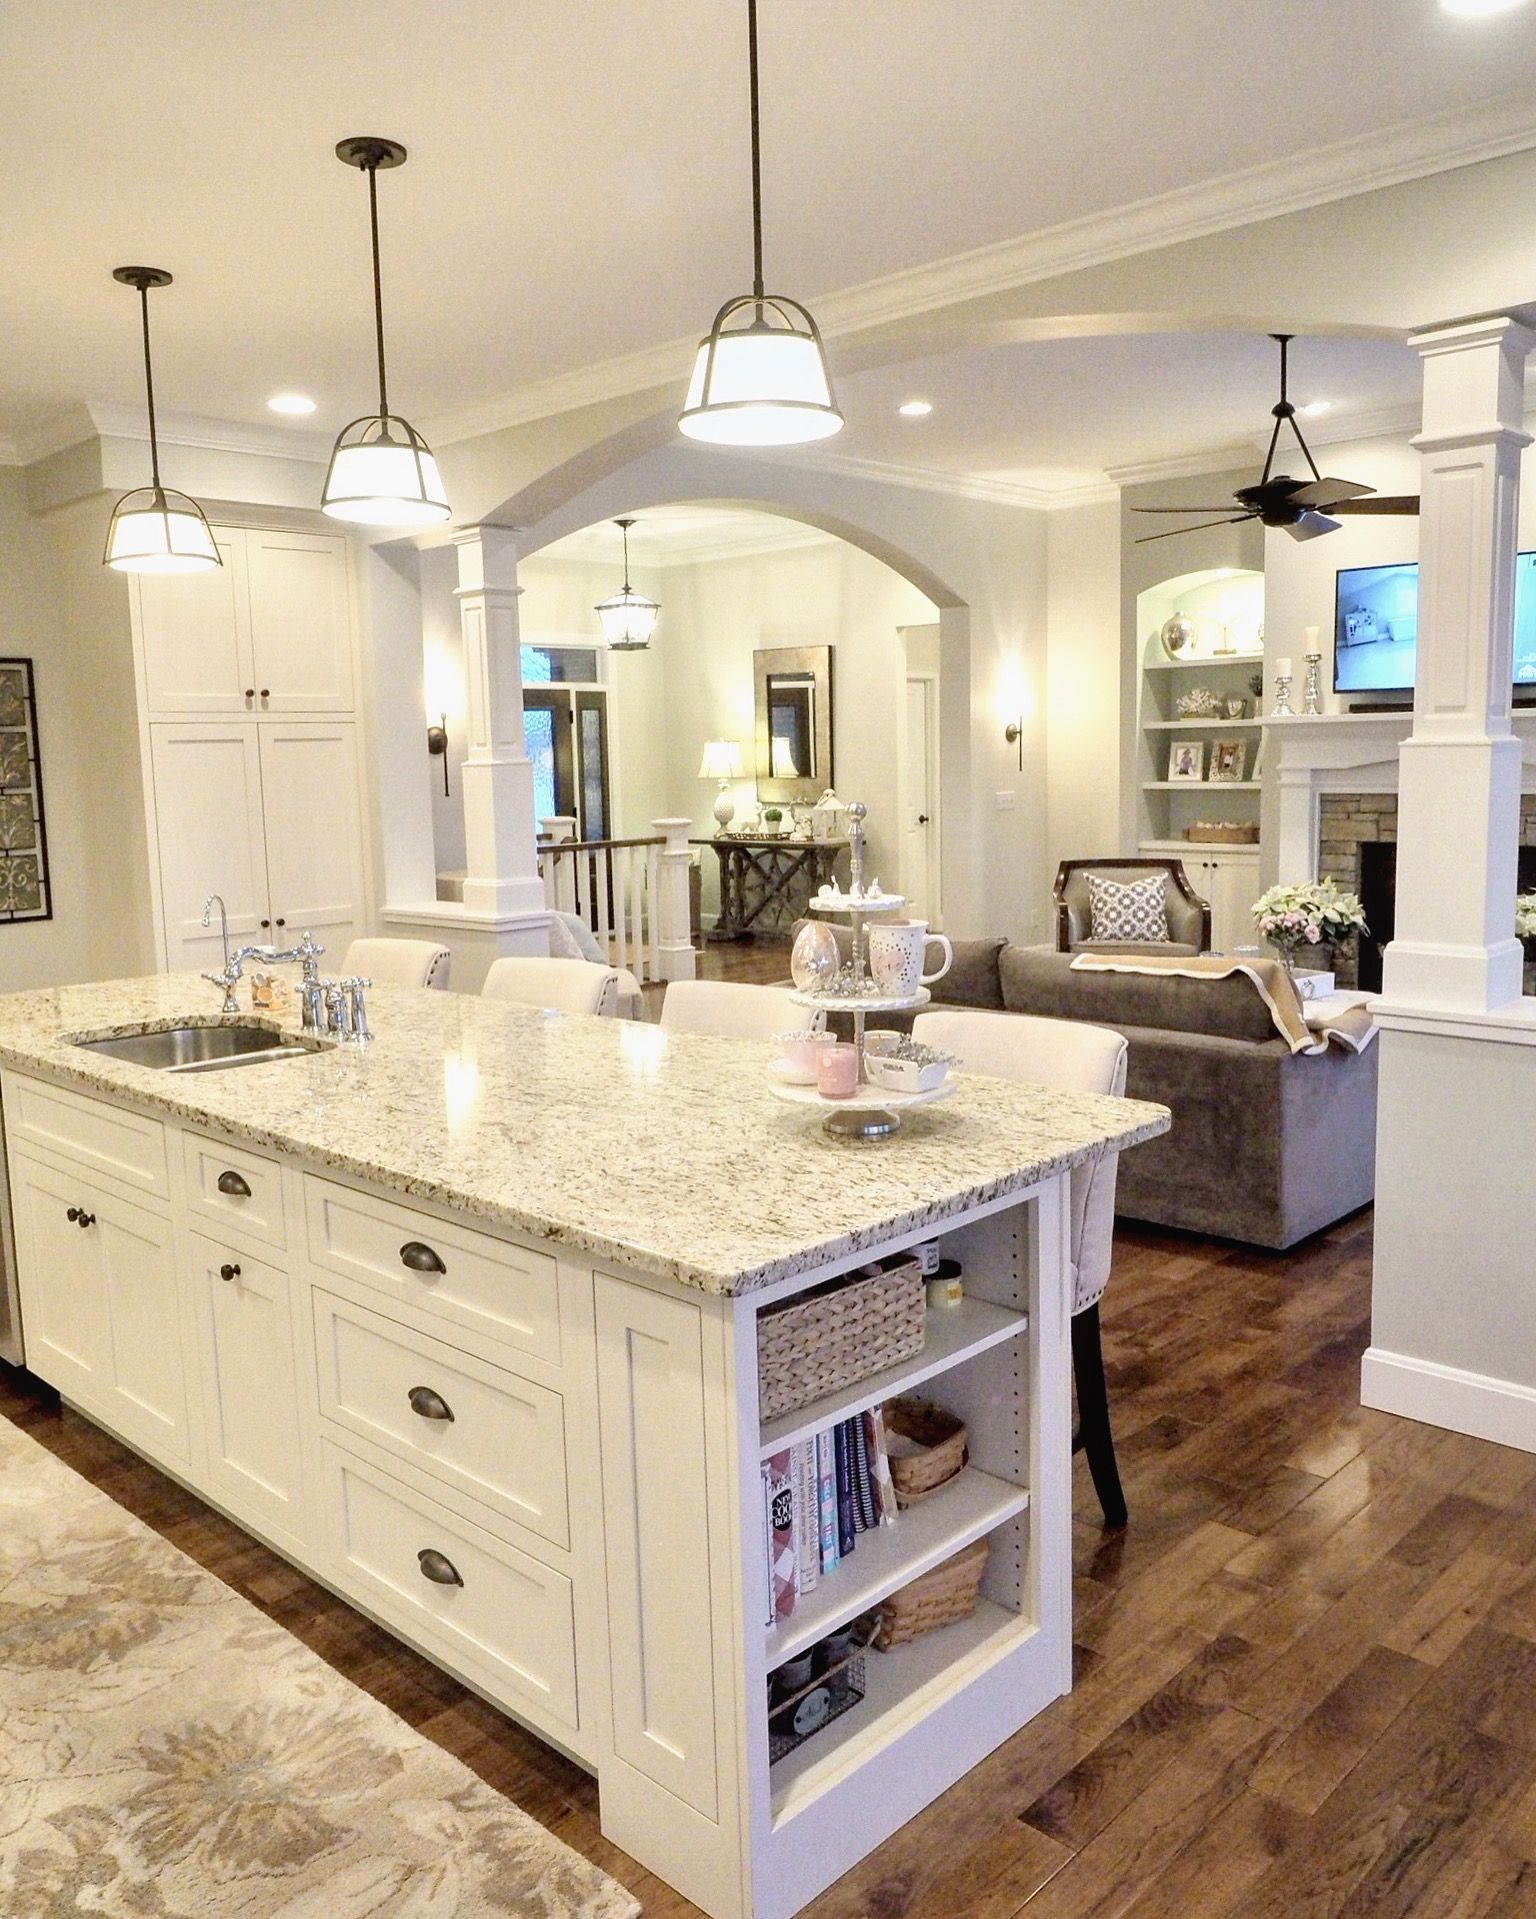 White Kitchen Off Cabinets Sherwin Williams Conservative Gray Venetian Gold Light Granite Open Layout Floor Plan Concept Hickory Wood